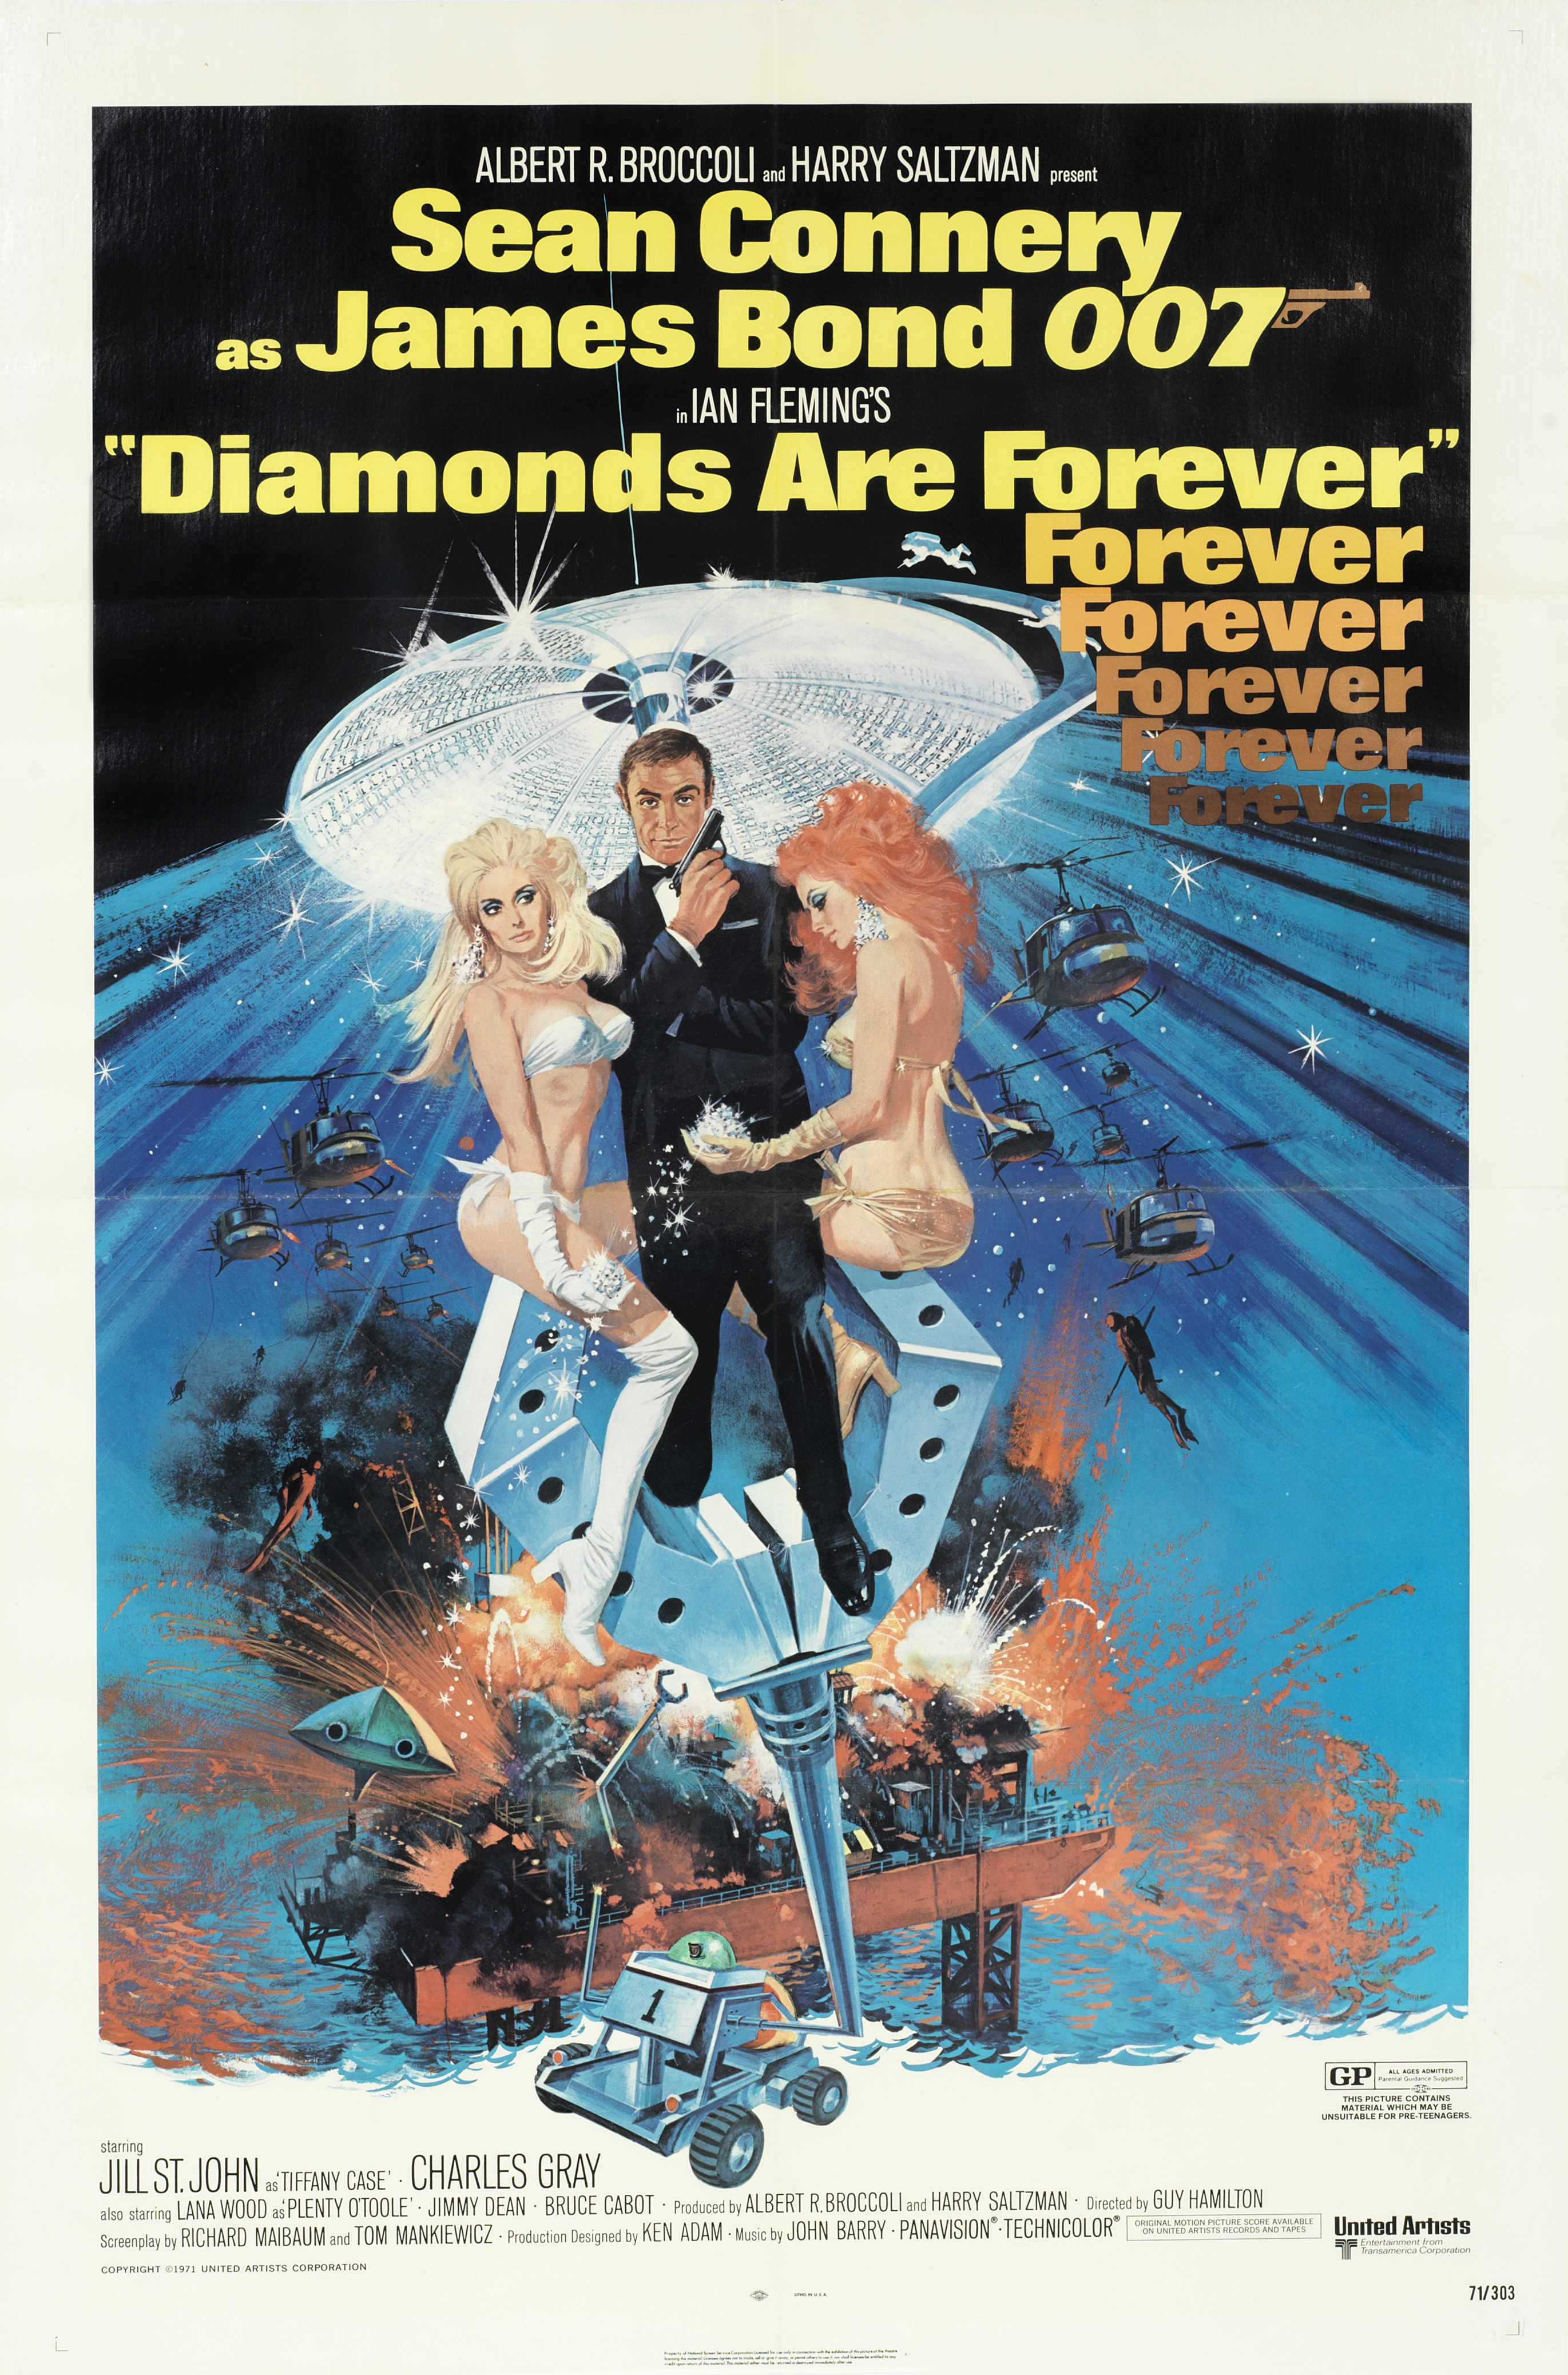 Lot 27 - James Bond: two posters for Goldfinger and Diamonds Are Forever, Eon Productions/ United Artists,...